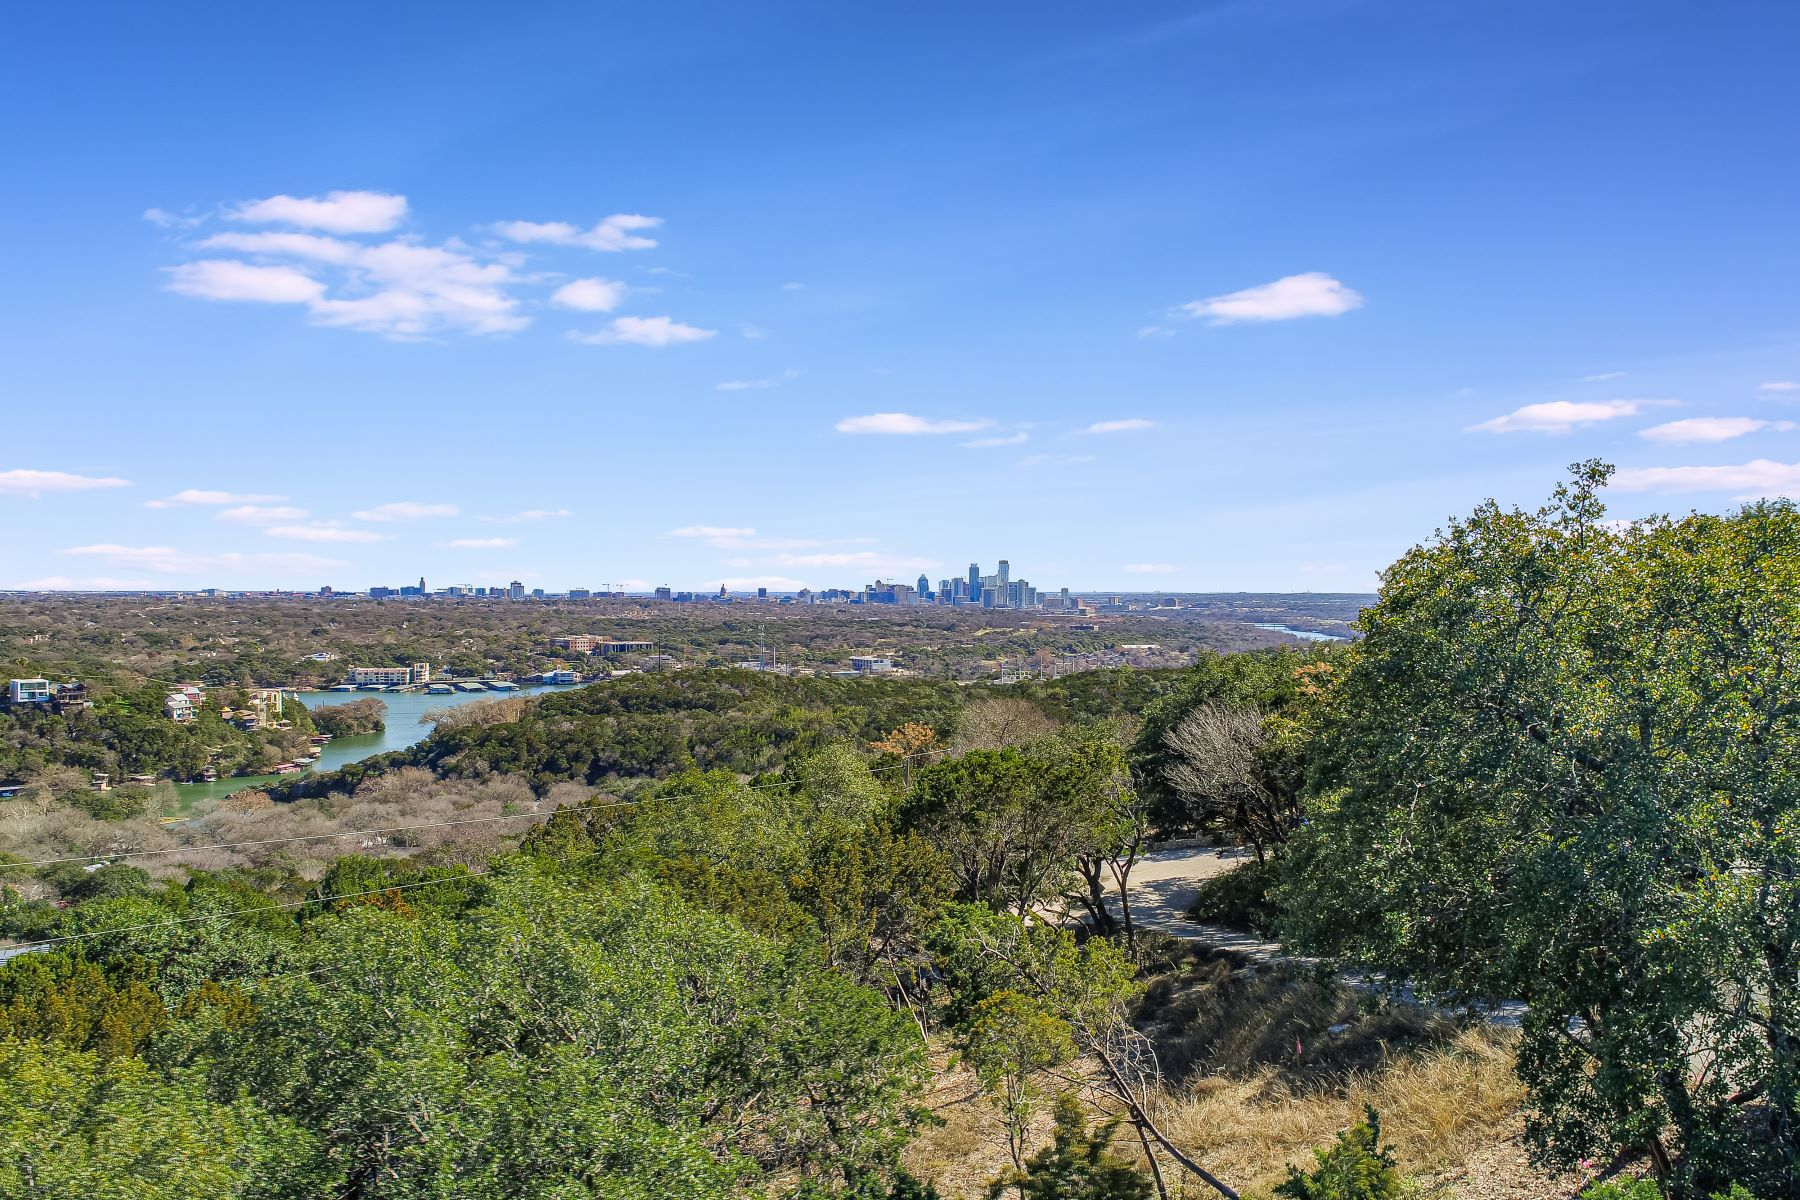 Terreno por un Venta en Prime 1 Acre Lot in West Lake Hills with City and Hill Country Views 1508 Wild Cat Hollow, West Lake Hills, Texas 78746 Estados Unidos